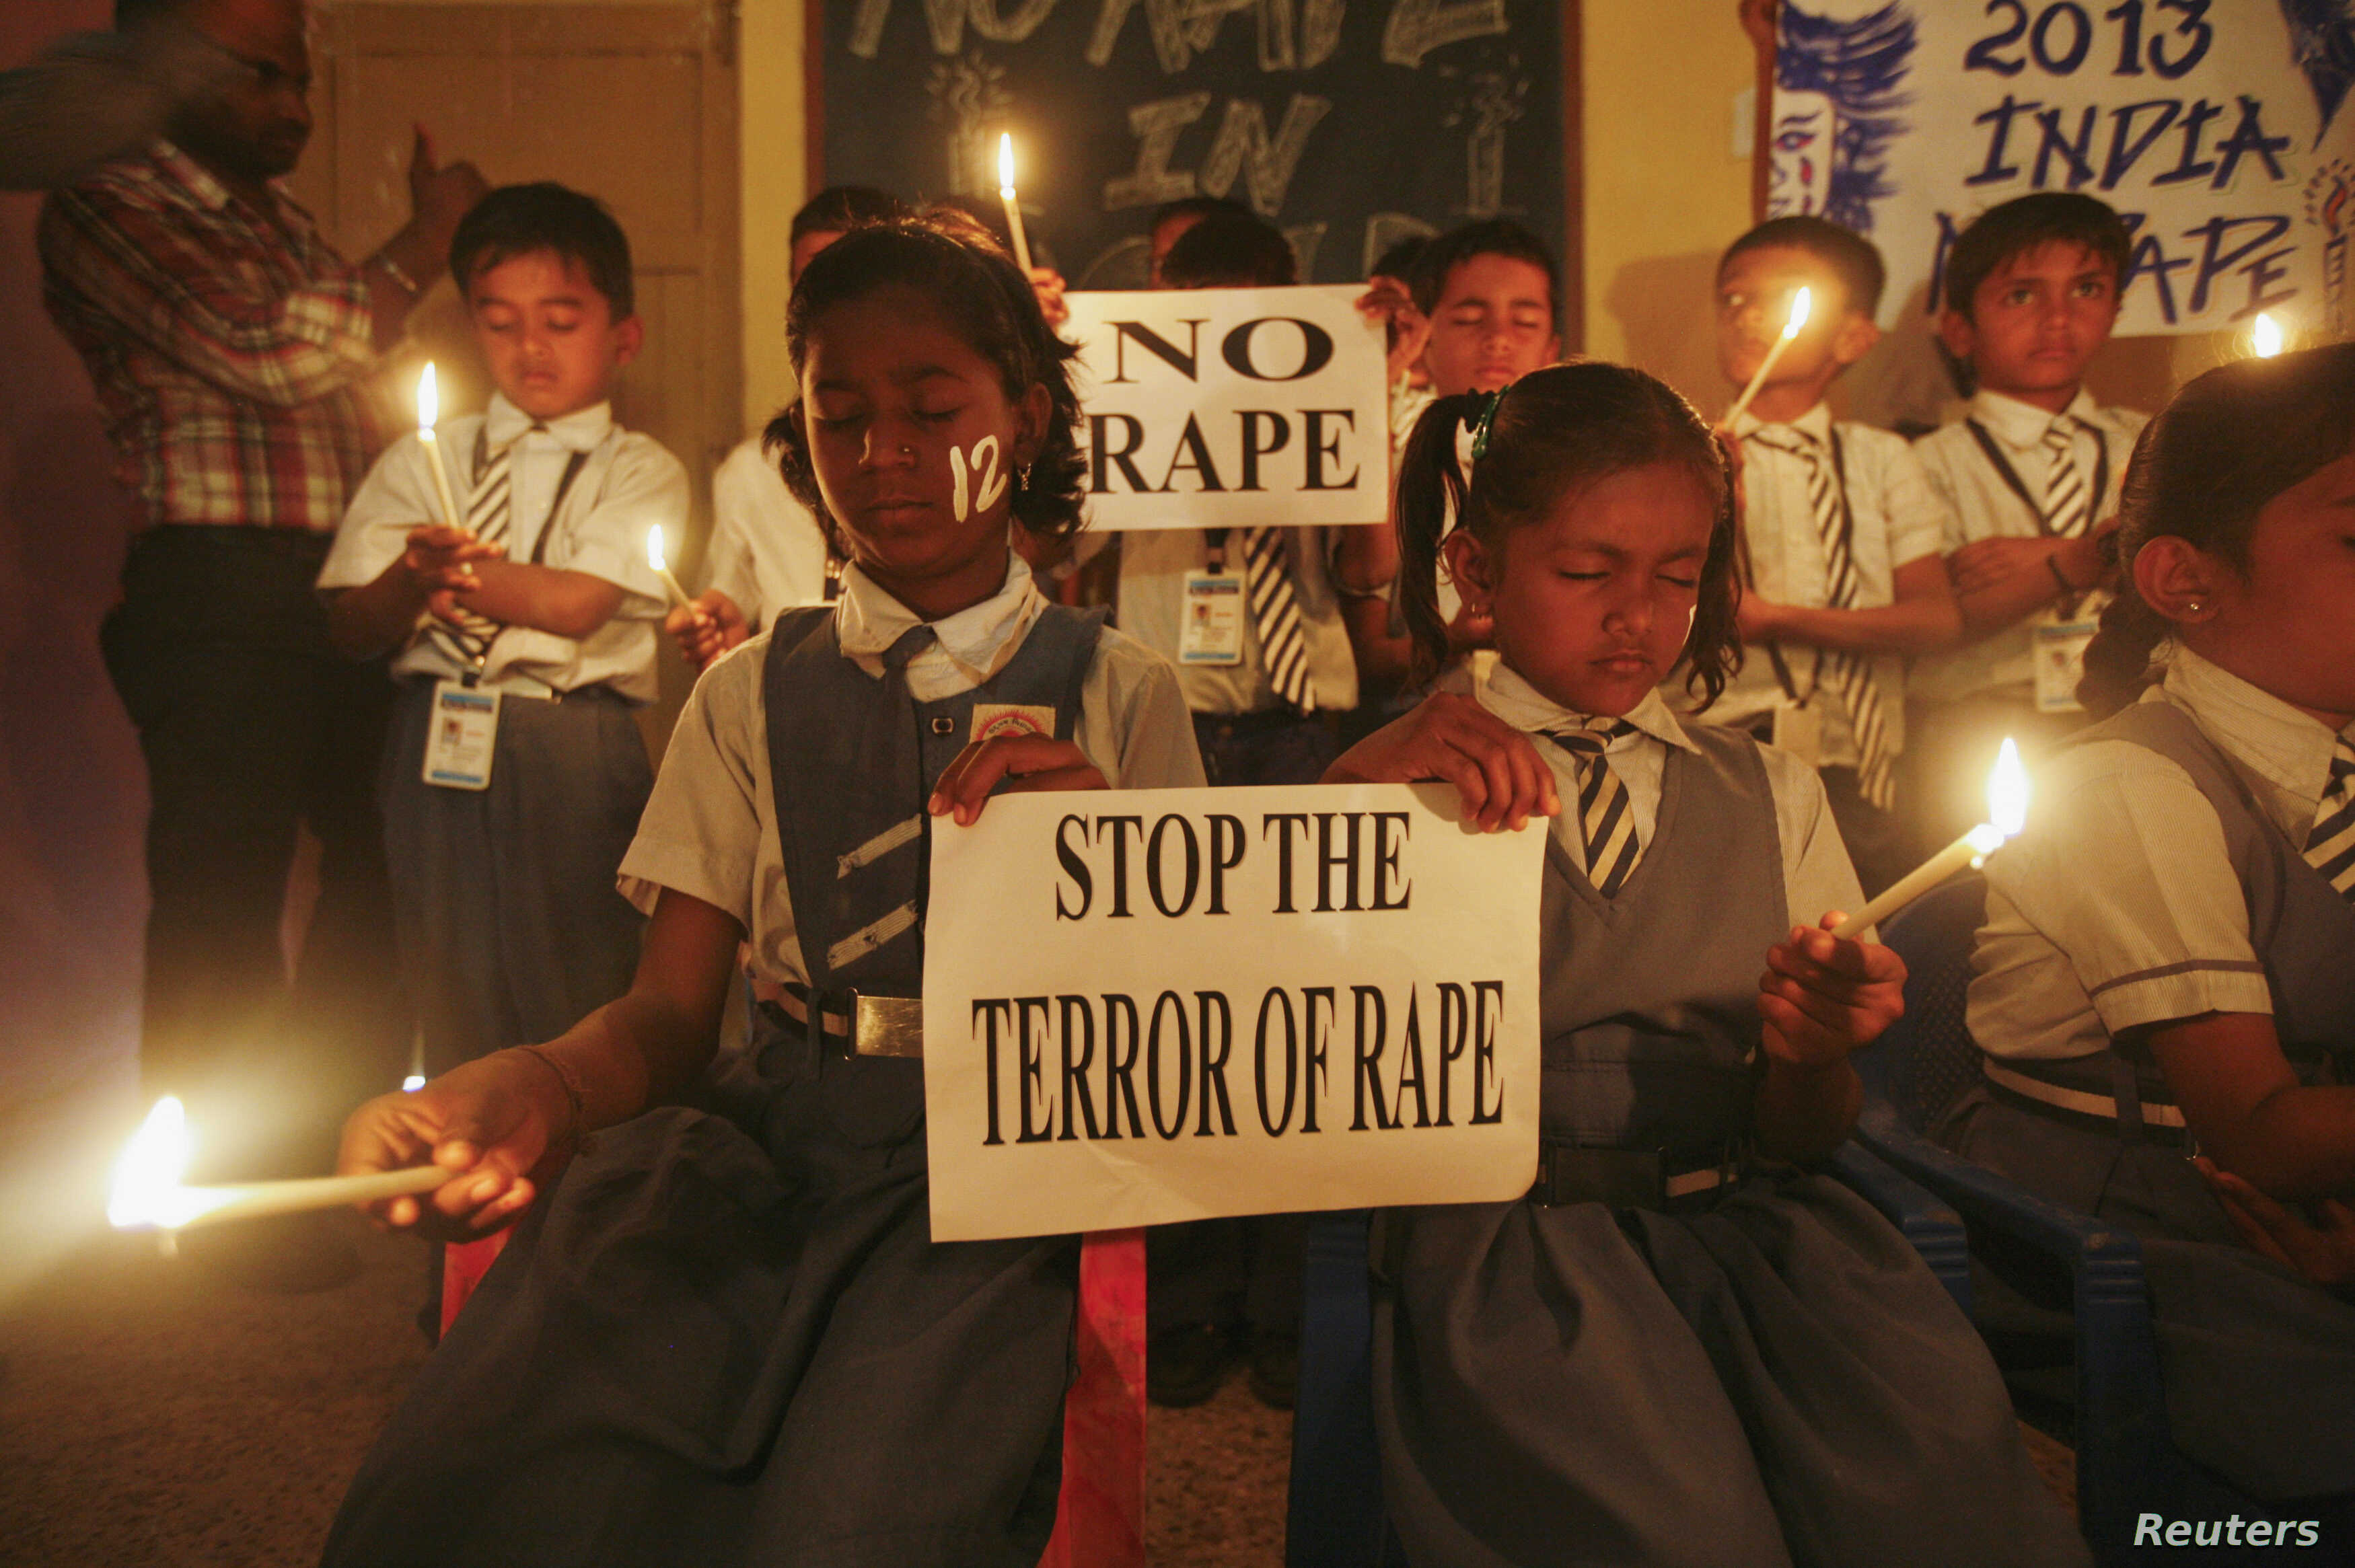 India Marks Somber New Year's Eve After Rape Victim's Death